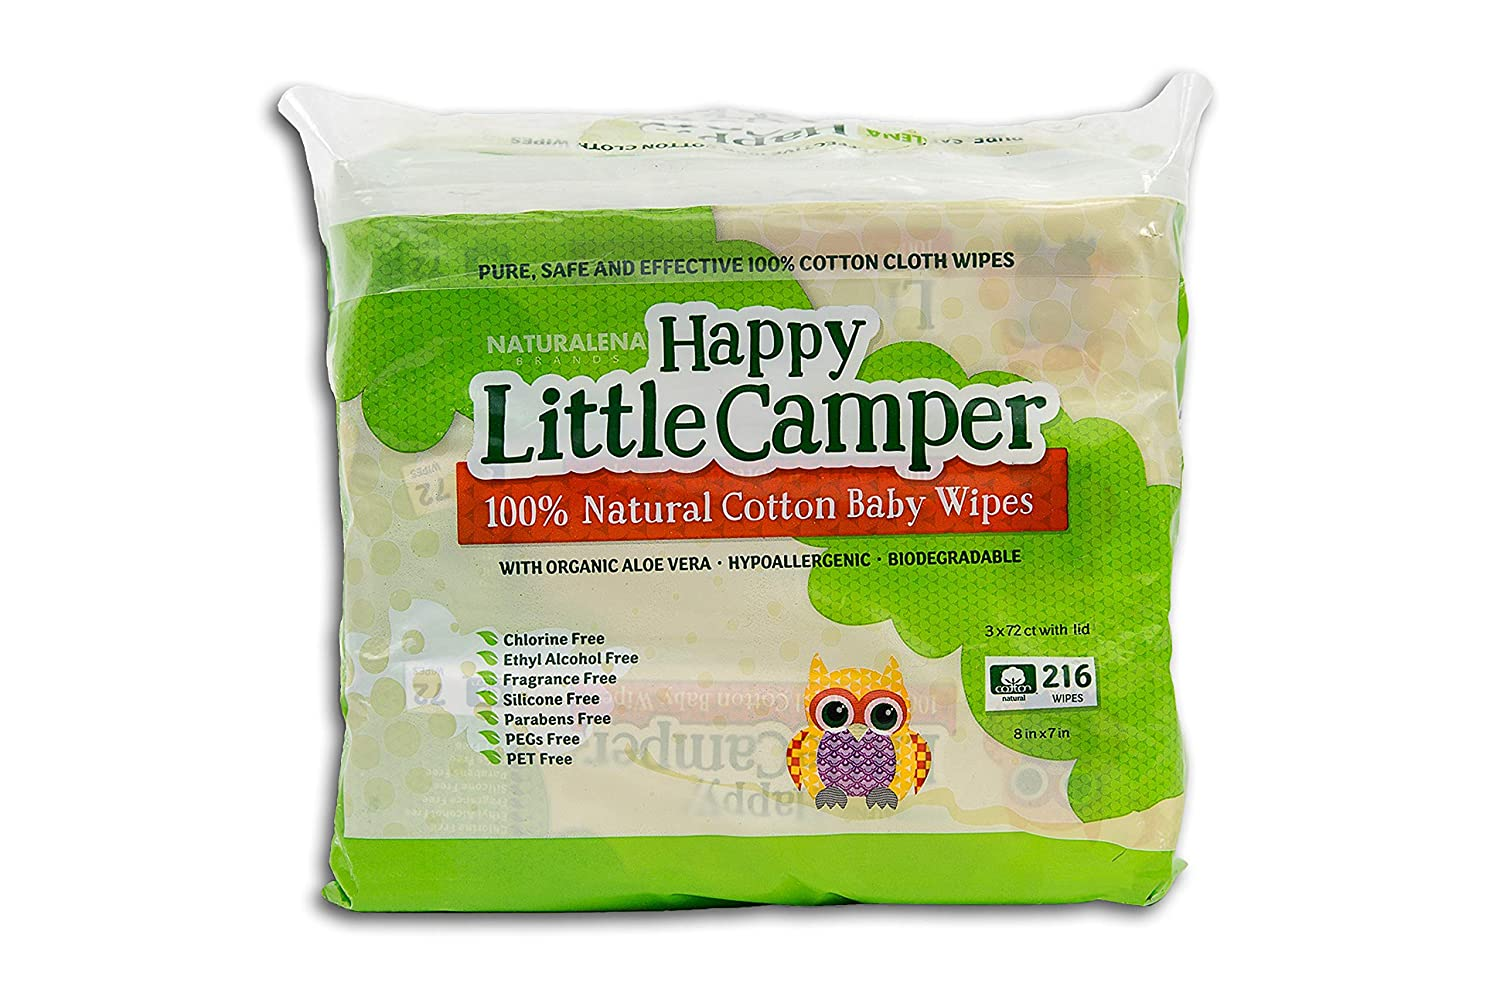 Happy Little Camper Flushable Baby Wipes with Organic Aloe, Septic Safe, 150 Count Naturalena Brands